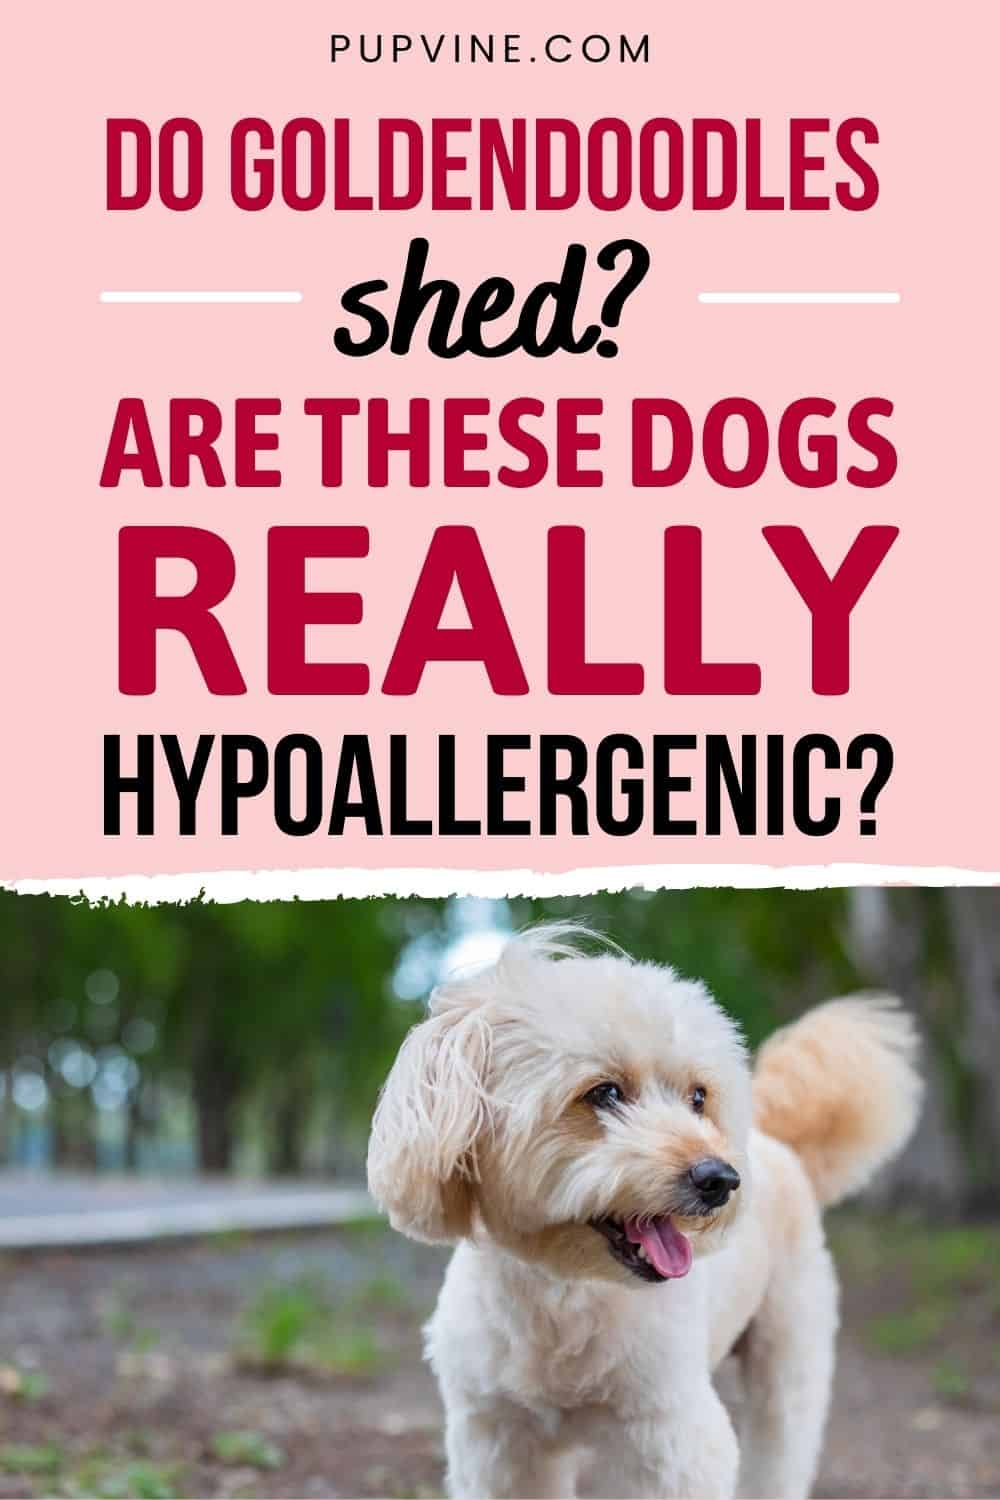 Do Goldendoodles Shed Are These Dogs Really Hypoallergenic